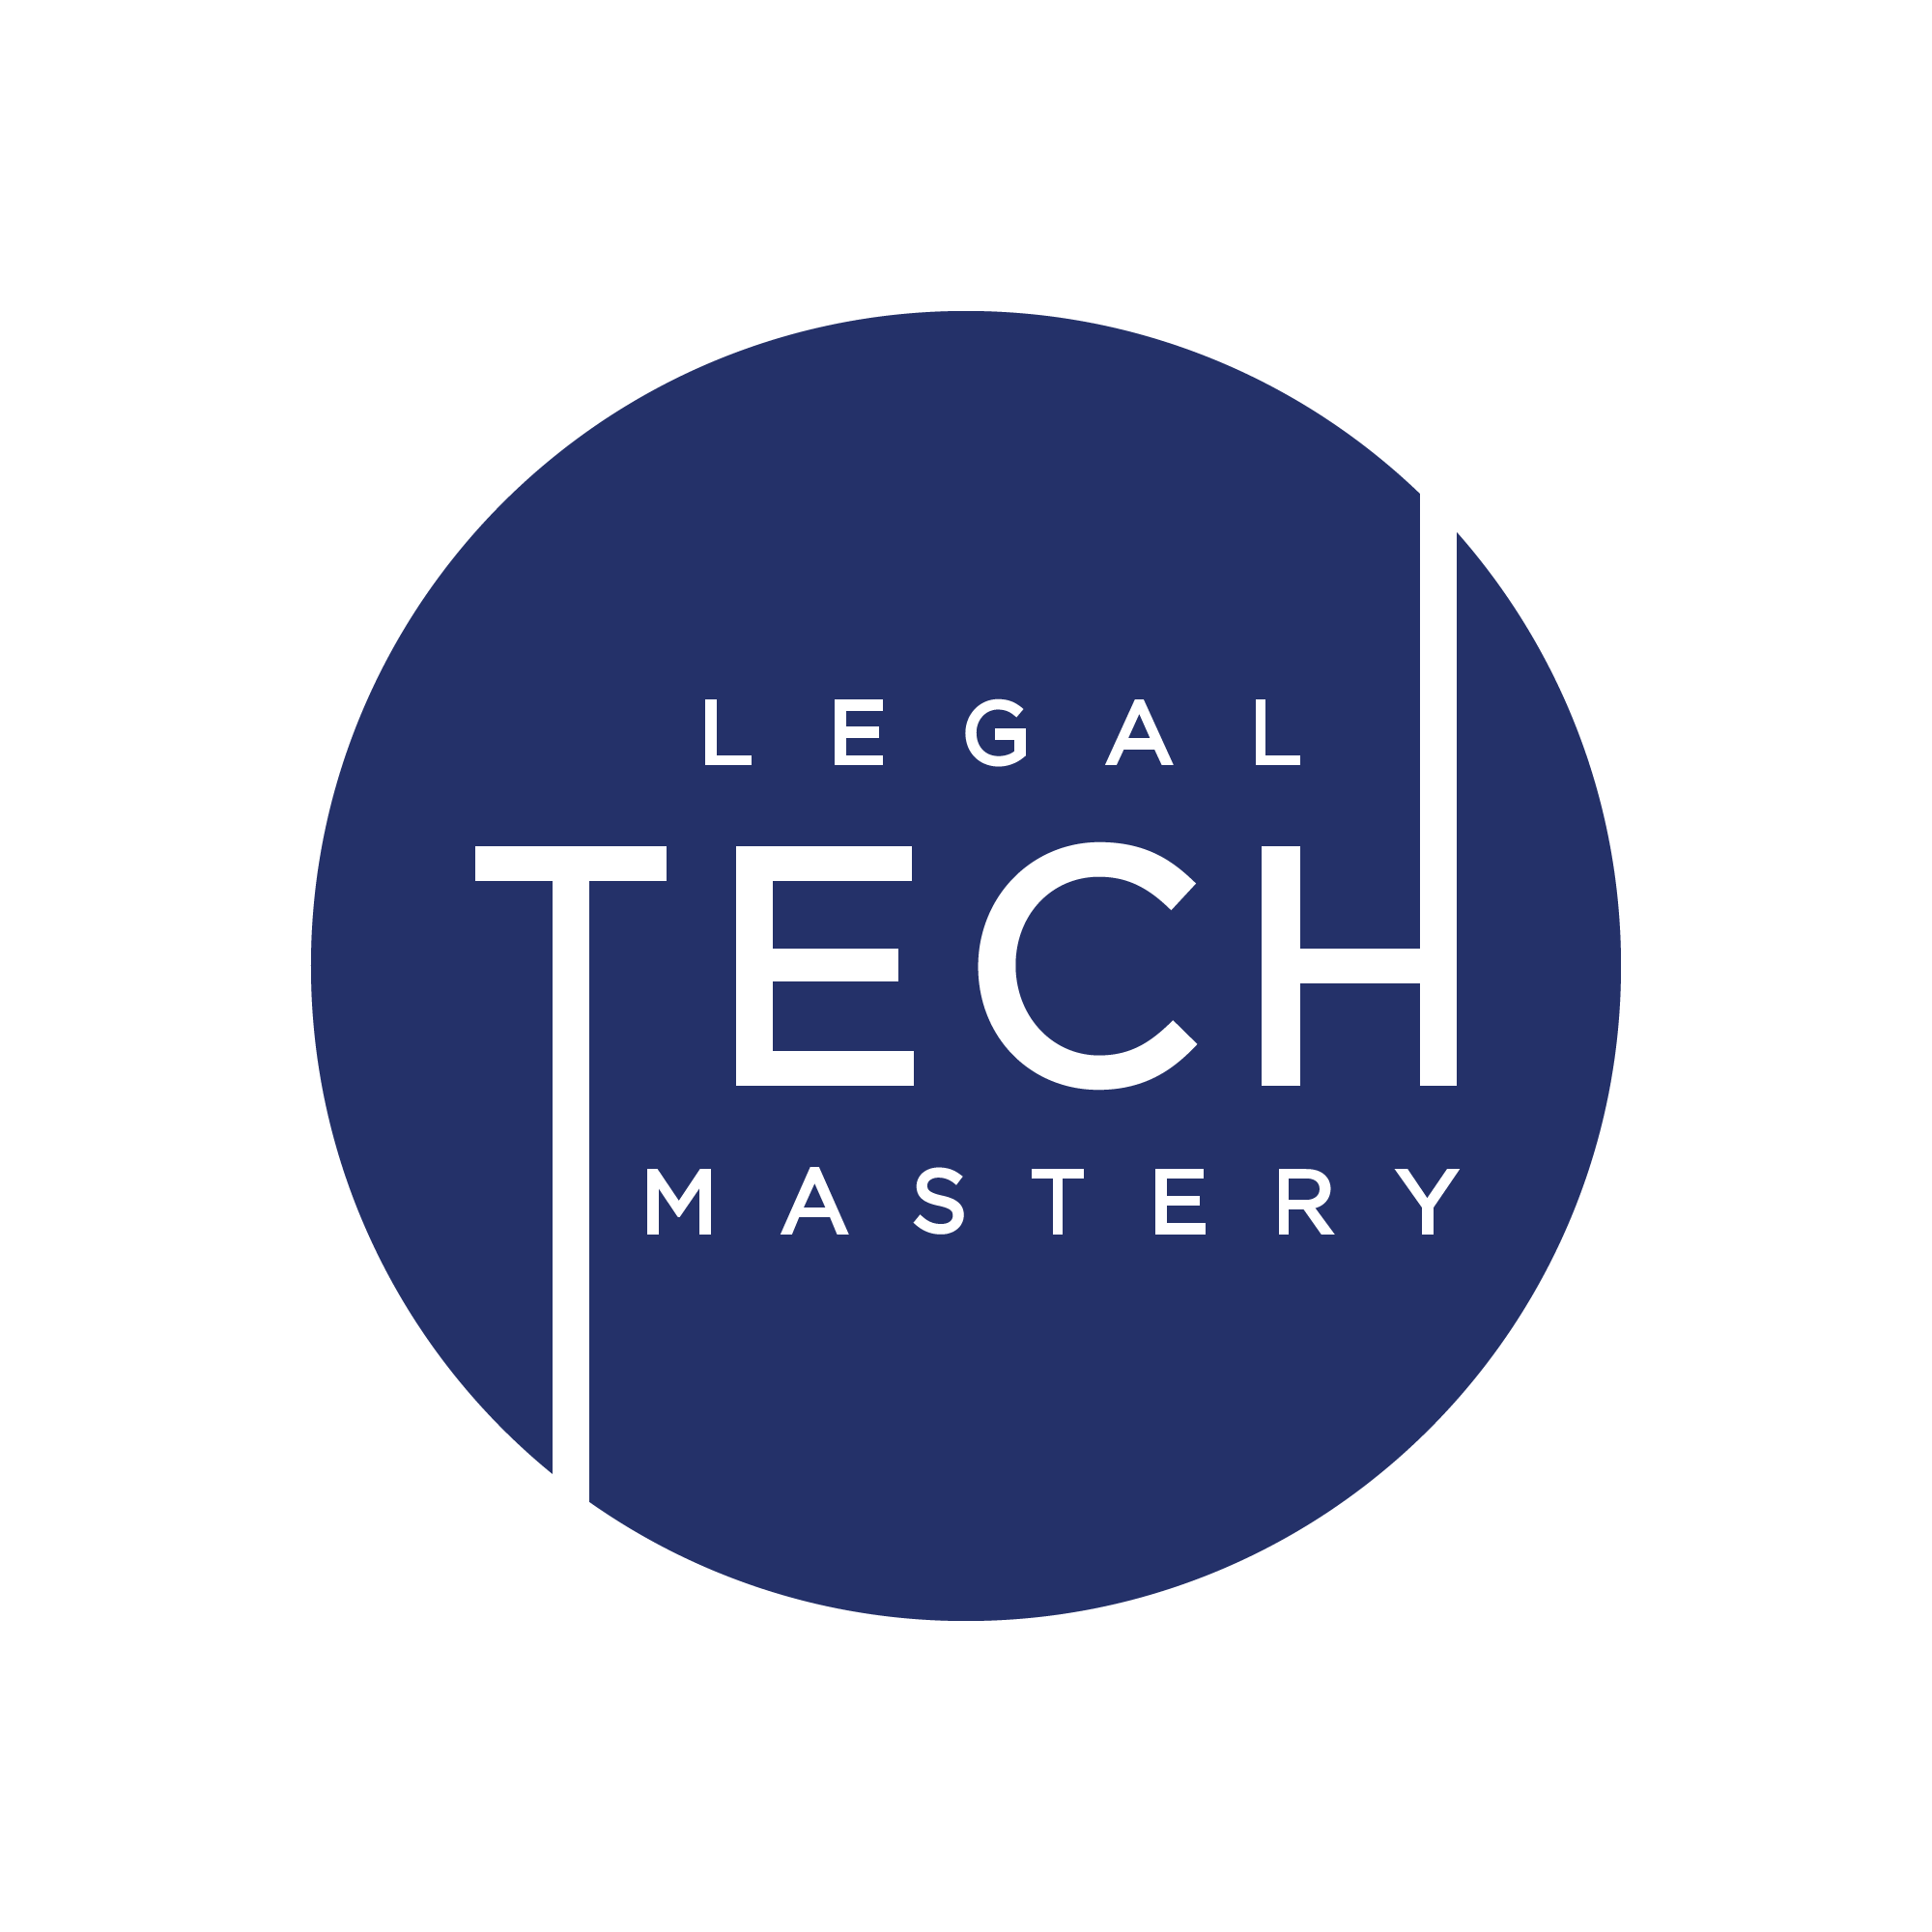 Link to Legal Tech Mastery Show homepage